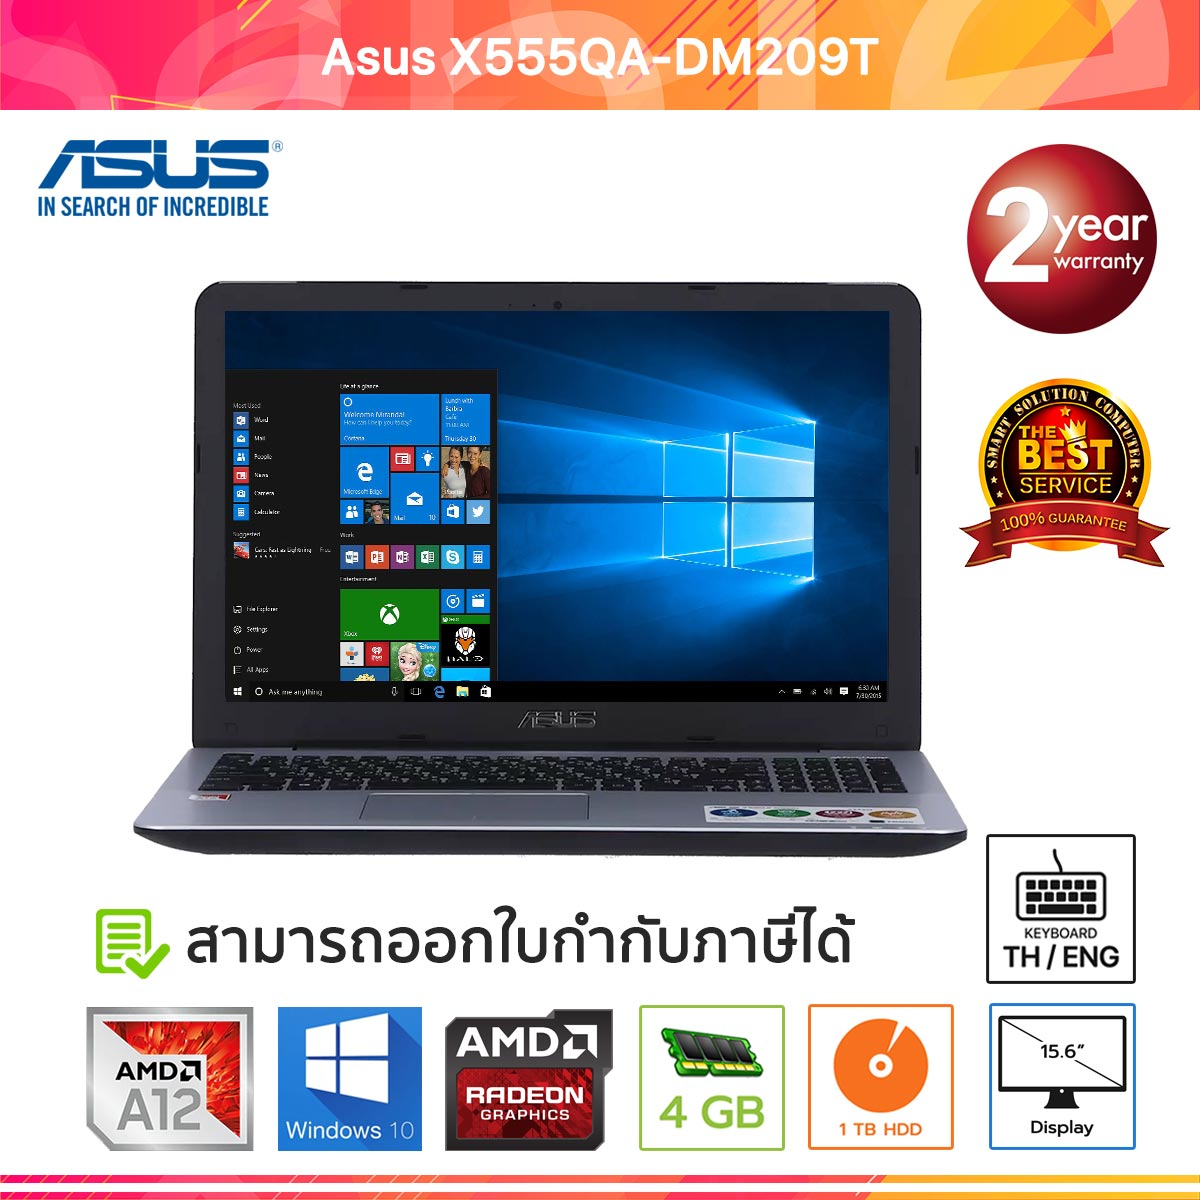 Asus X555QA-DM209T AMD A12-9720P/4GB/1TB/Radeon R7/15.6/Win10 (Black)